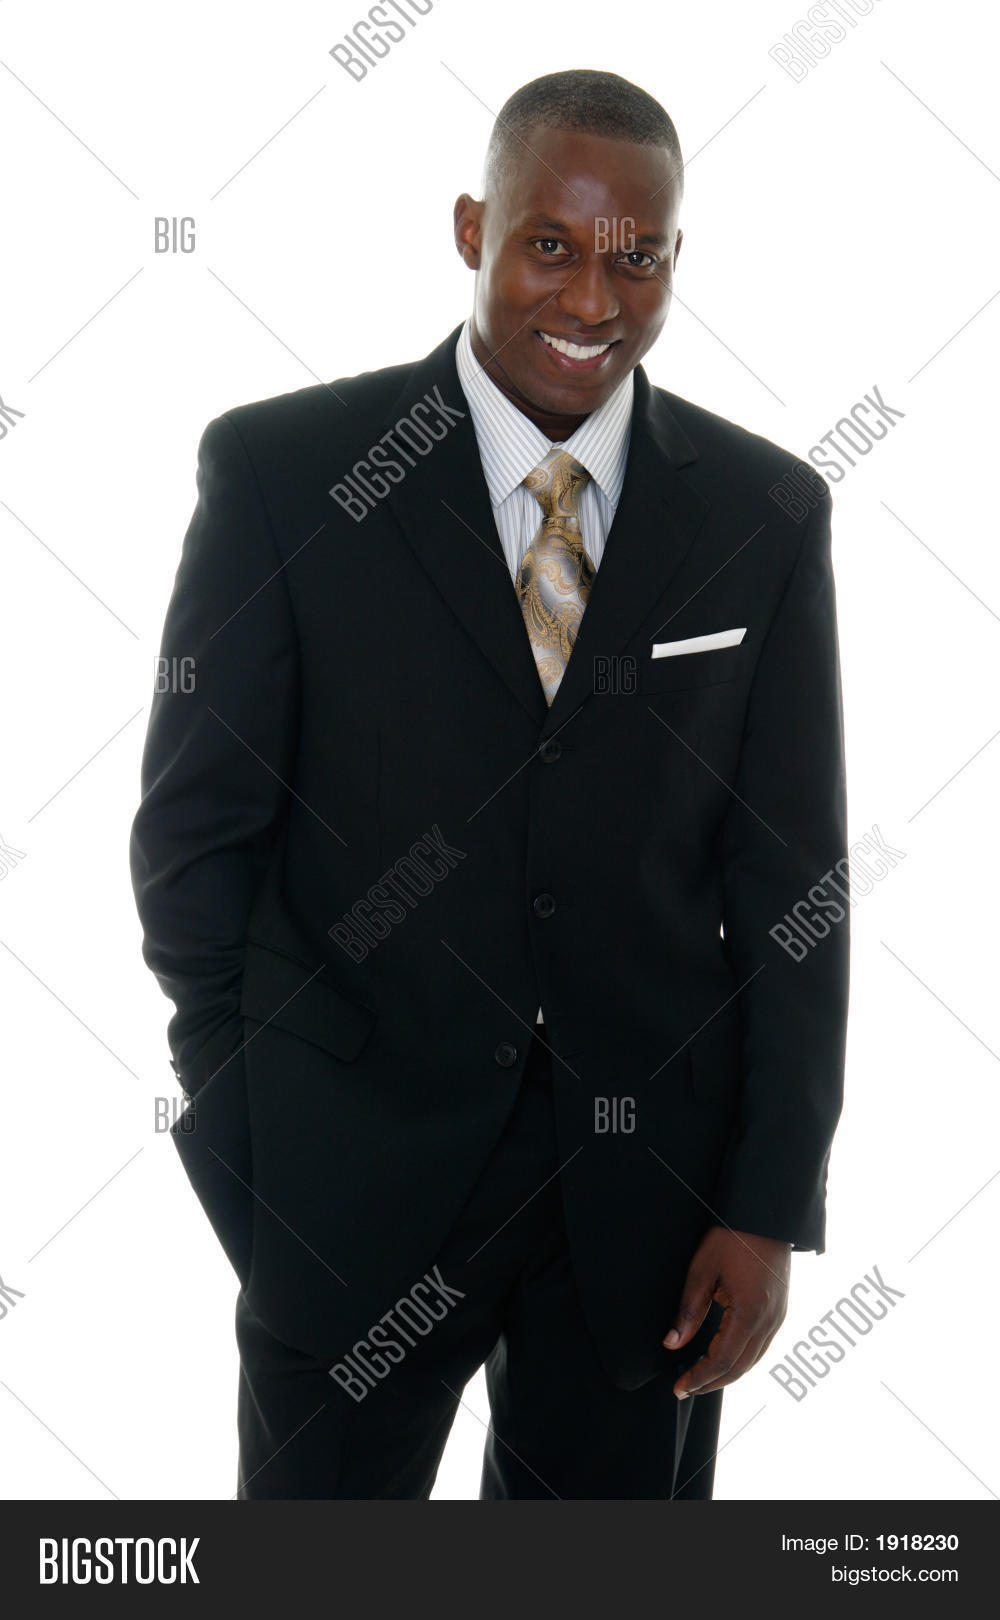 Business Man In Black Suit 3 Stock Photo & Stock Images | Bigstock